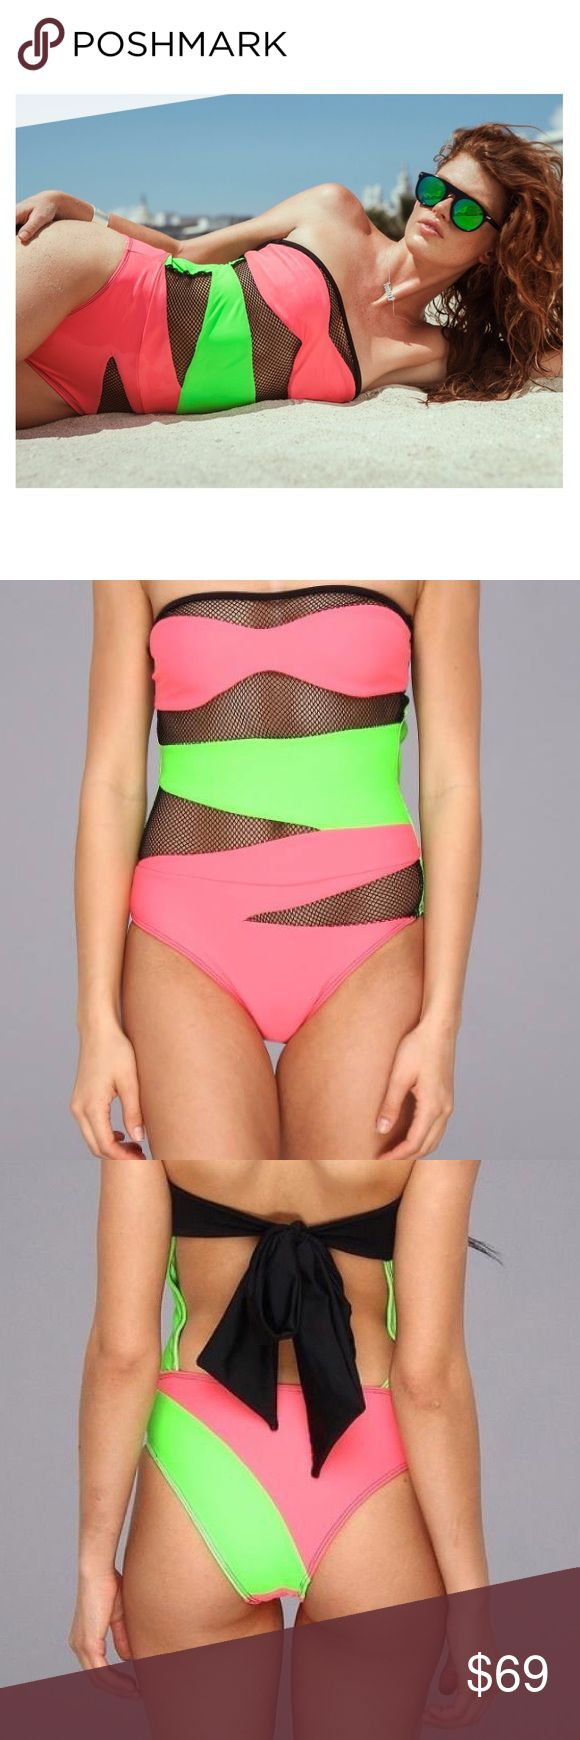 Beach Riot Heatwave Suit Brand New Beach Riot Swimsuit. Strapless with self-tie back. Sheer net and color block panels. 80% Nylon 20% Spandex. Beach Riot Swim One Pieces